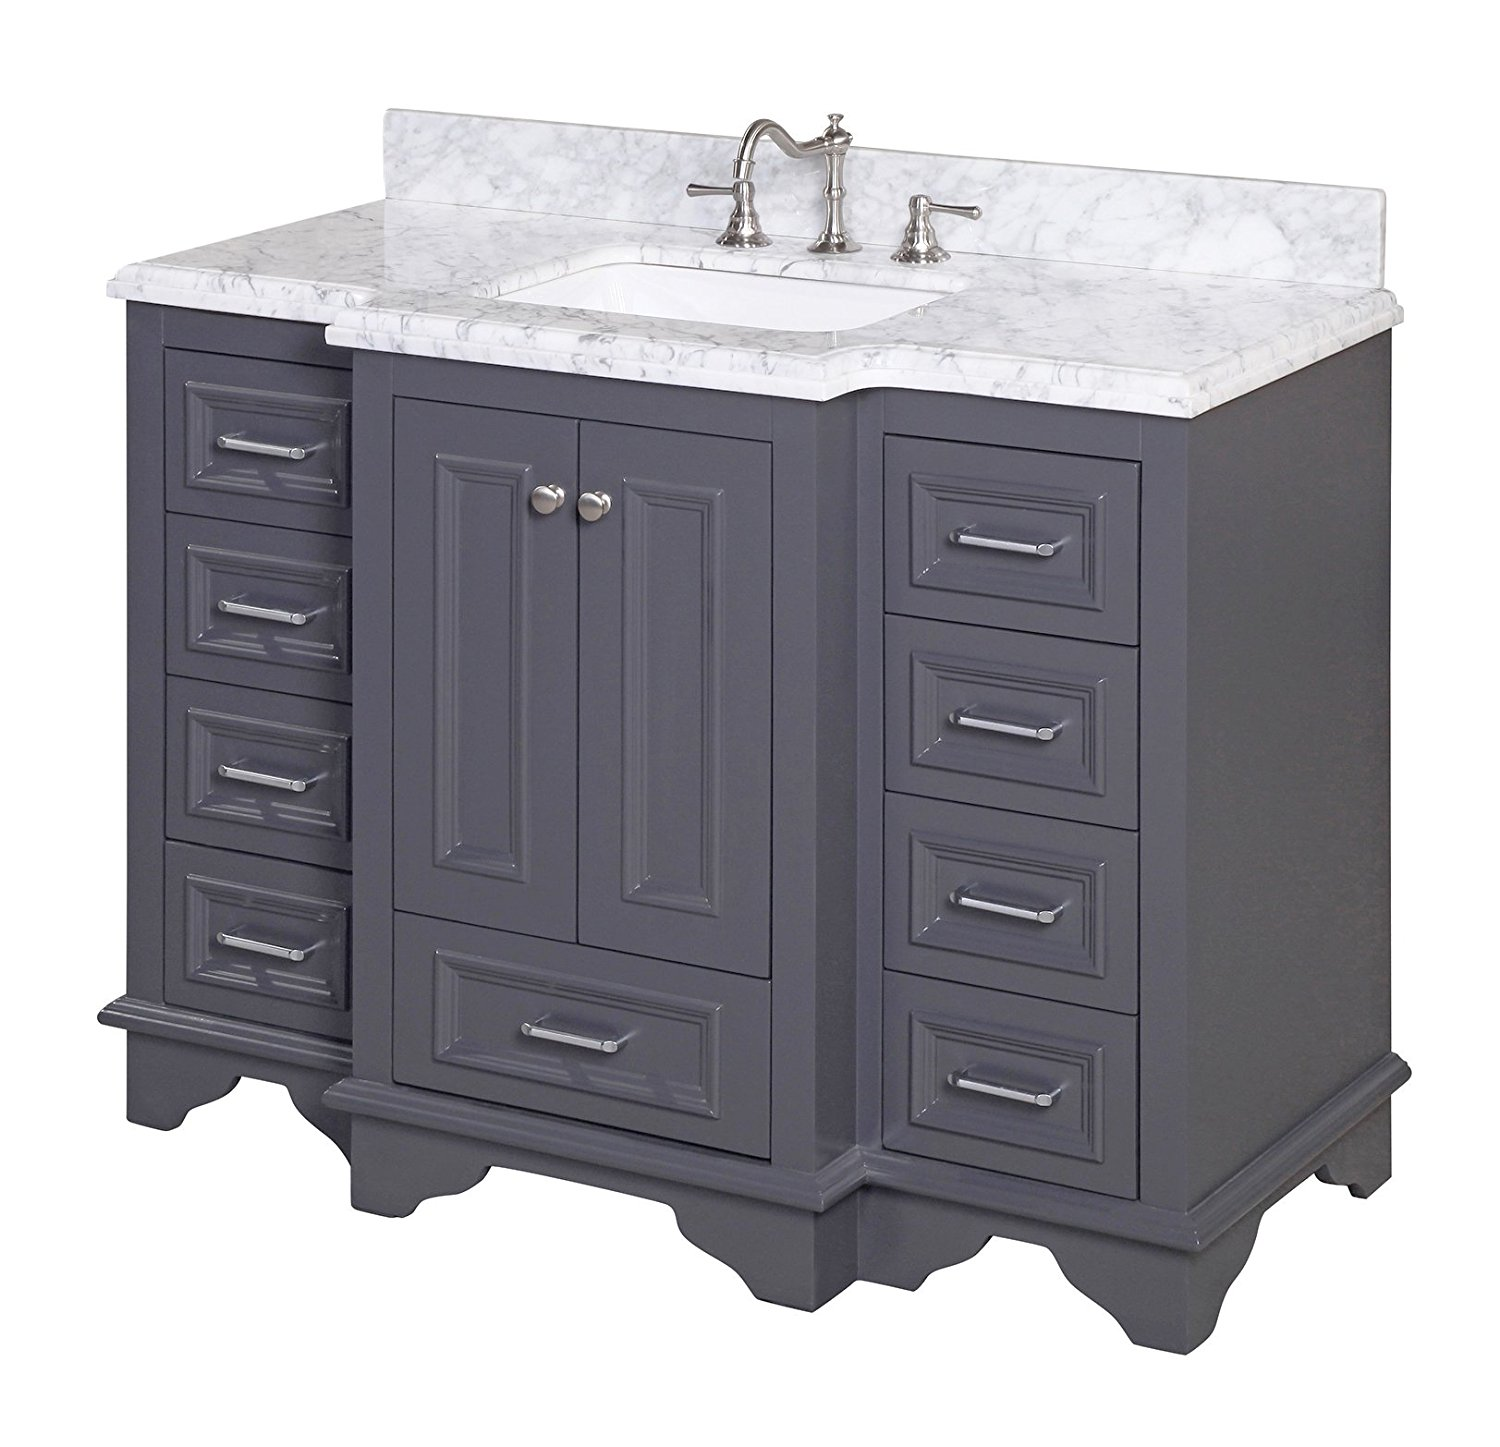 Bathroom Vanity Options stunning grey bathroom vanity options - the creek line house